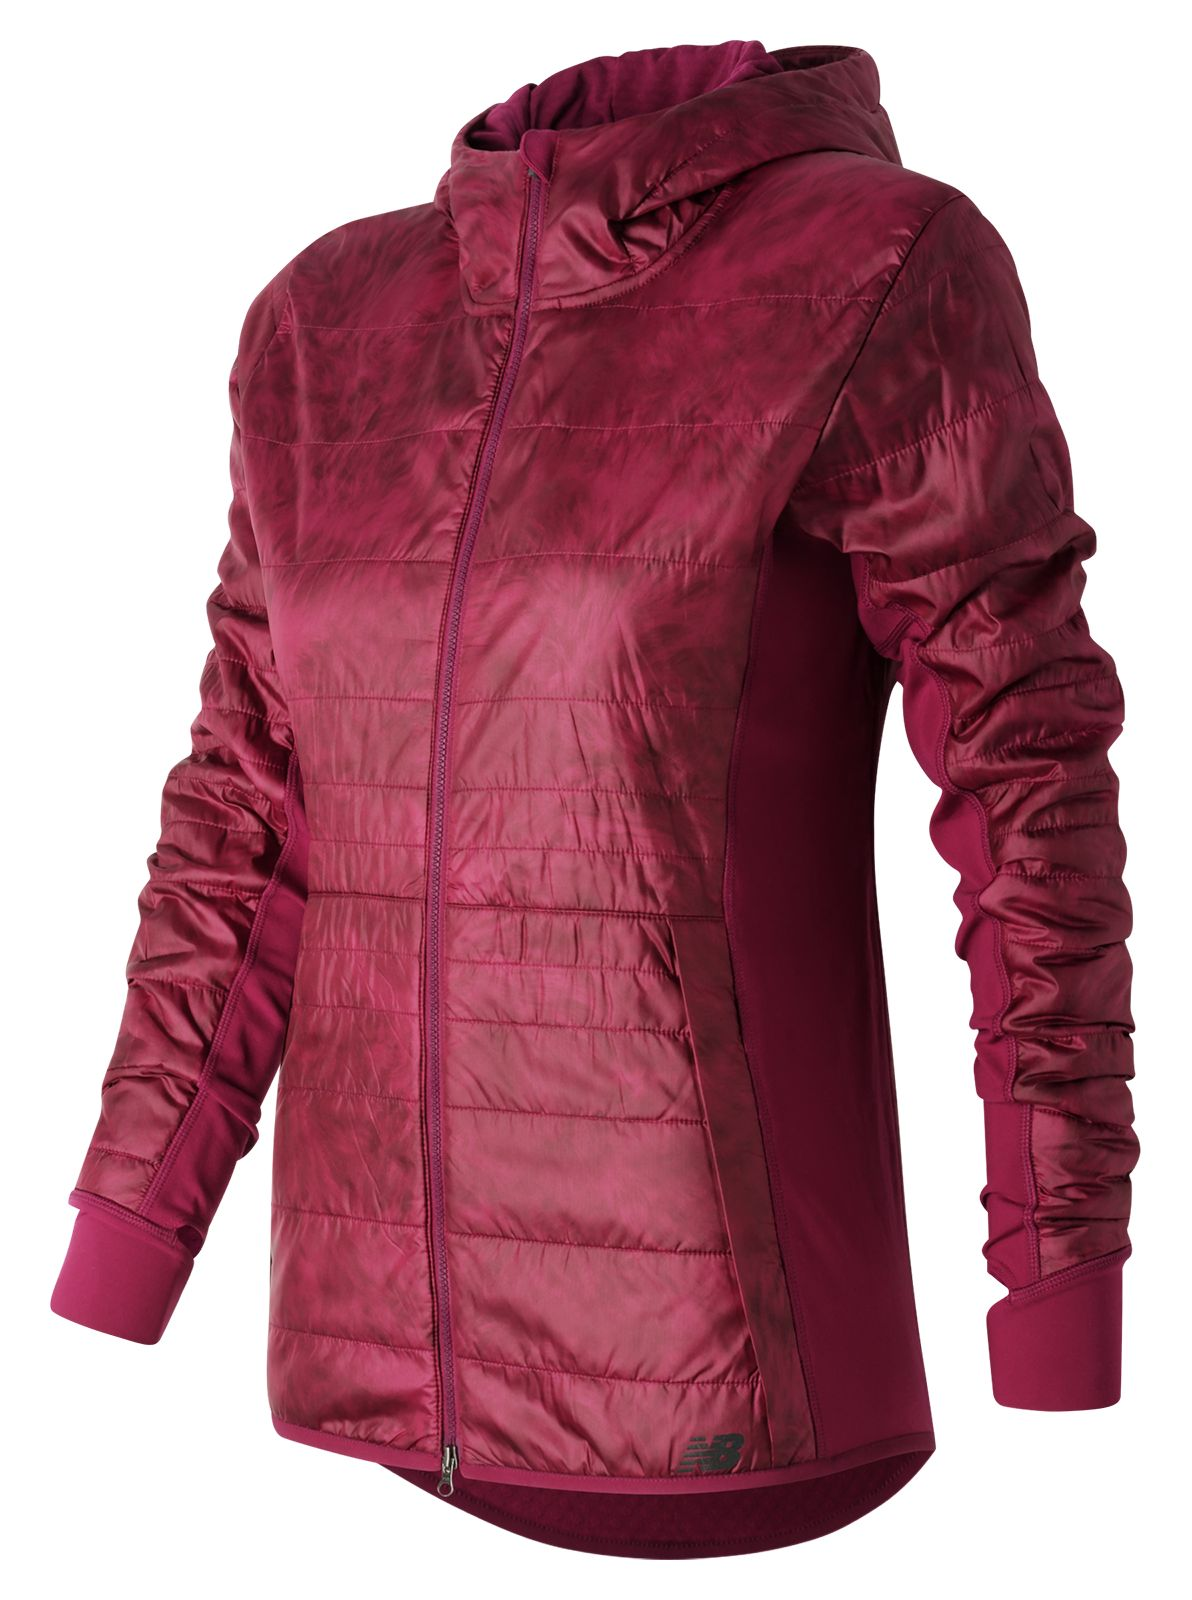 New Balance : NB Heat Hybrid Jacket : Women's Apparel : WJ63120JFP